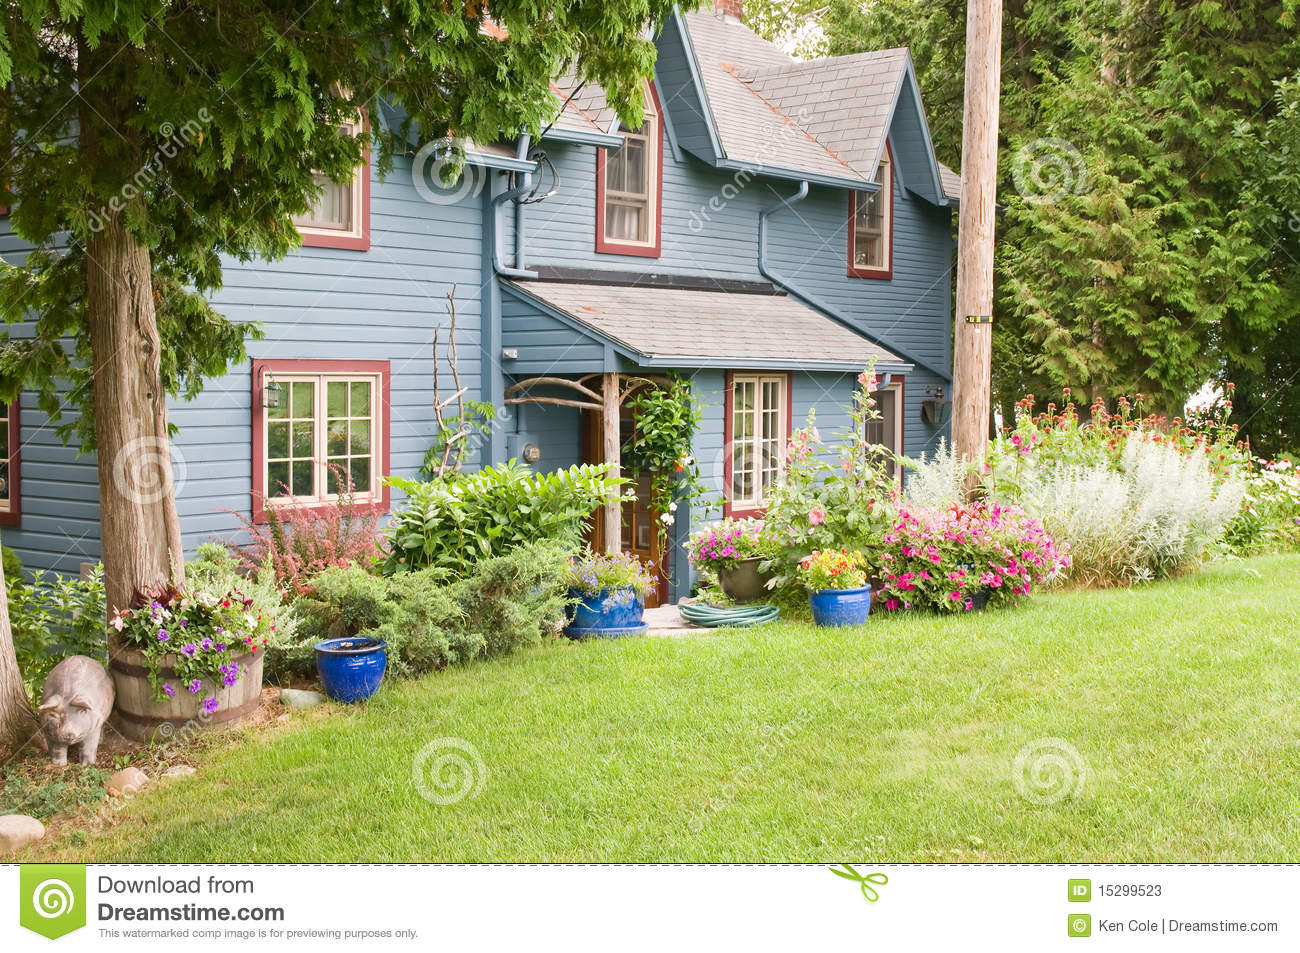 Rustic House In Woods Stock Photos - Image: 15299523